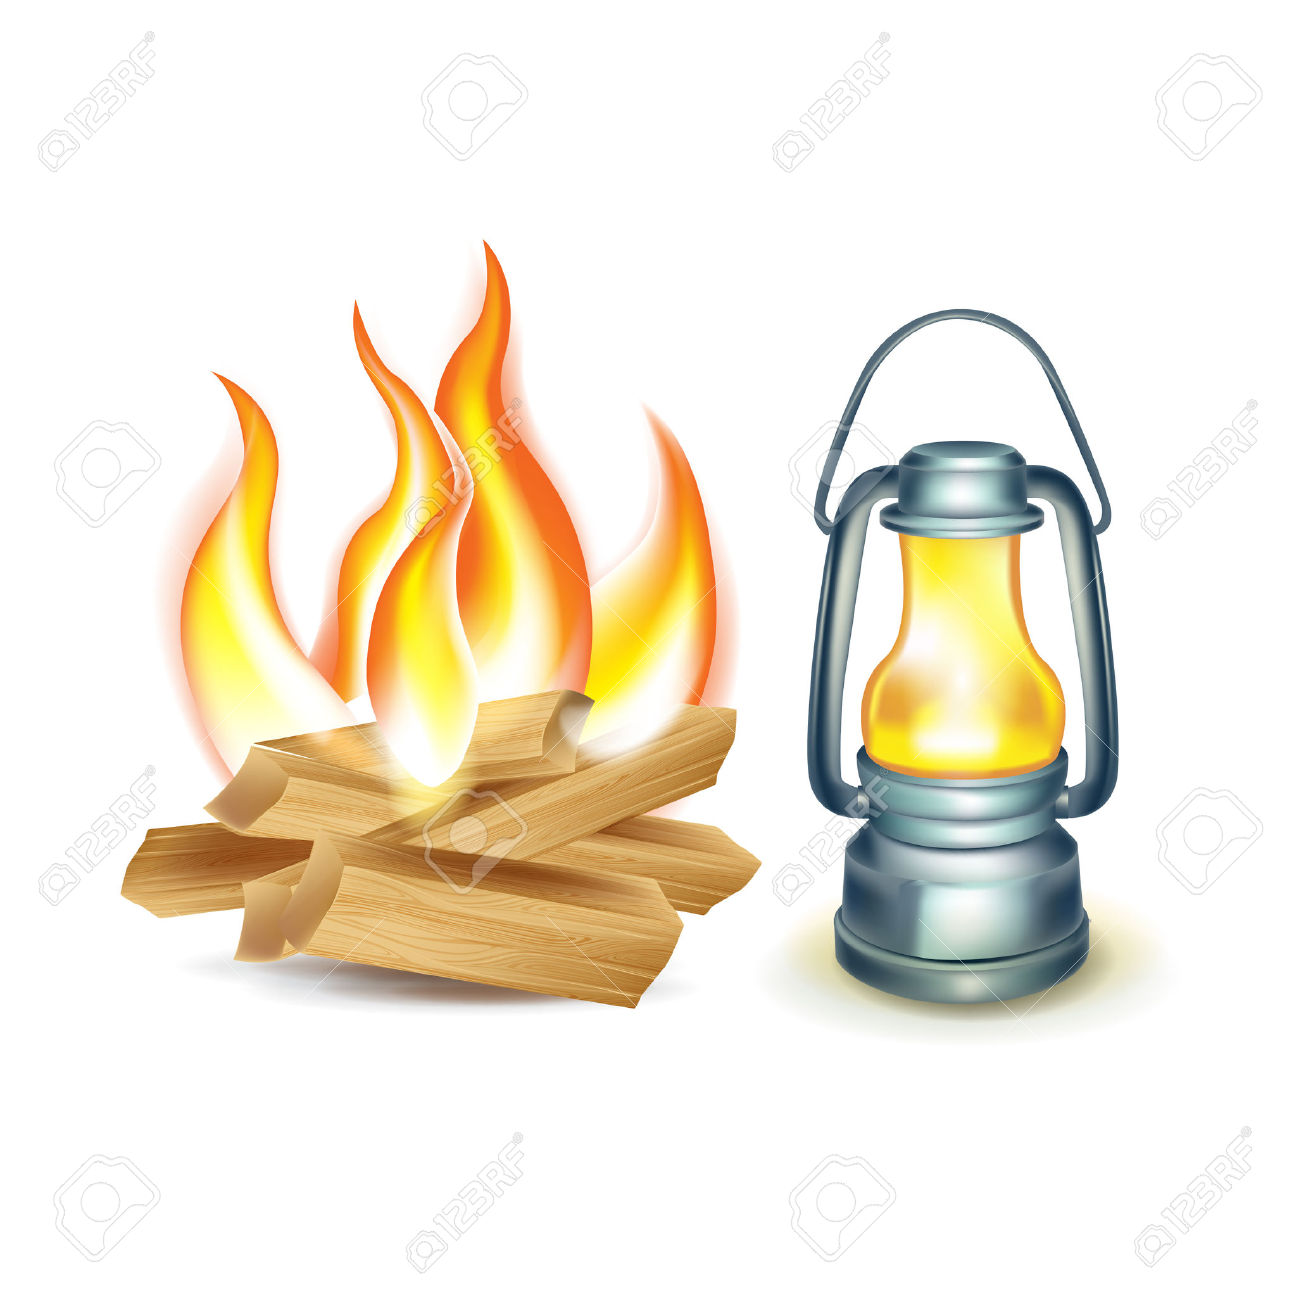 Wood Camp Fire And Oil Lamp Isolated On White Royalty Free.